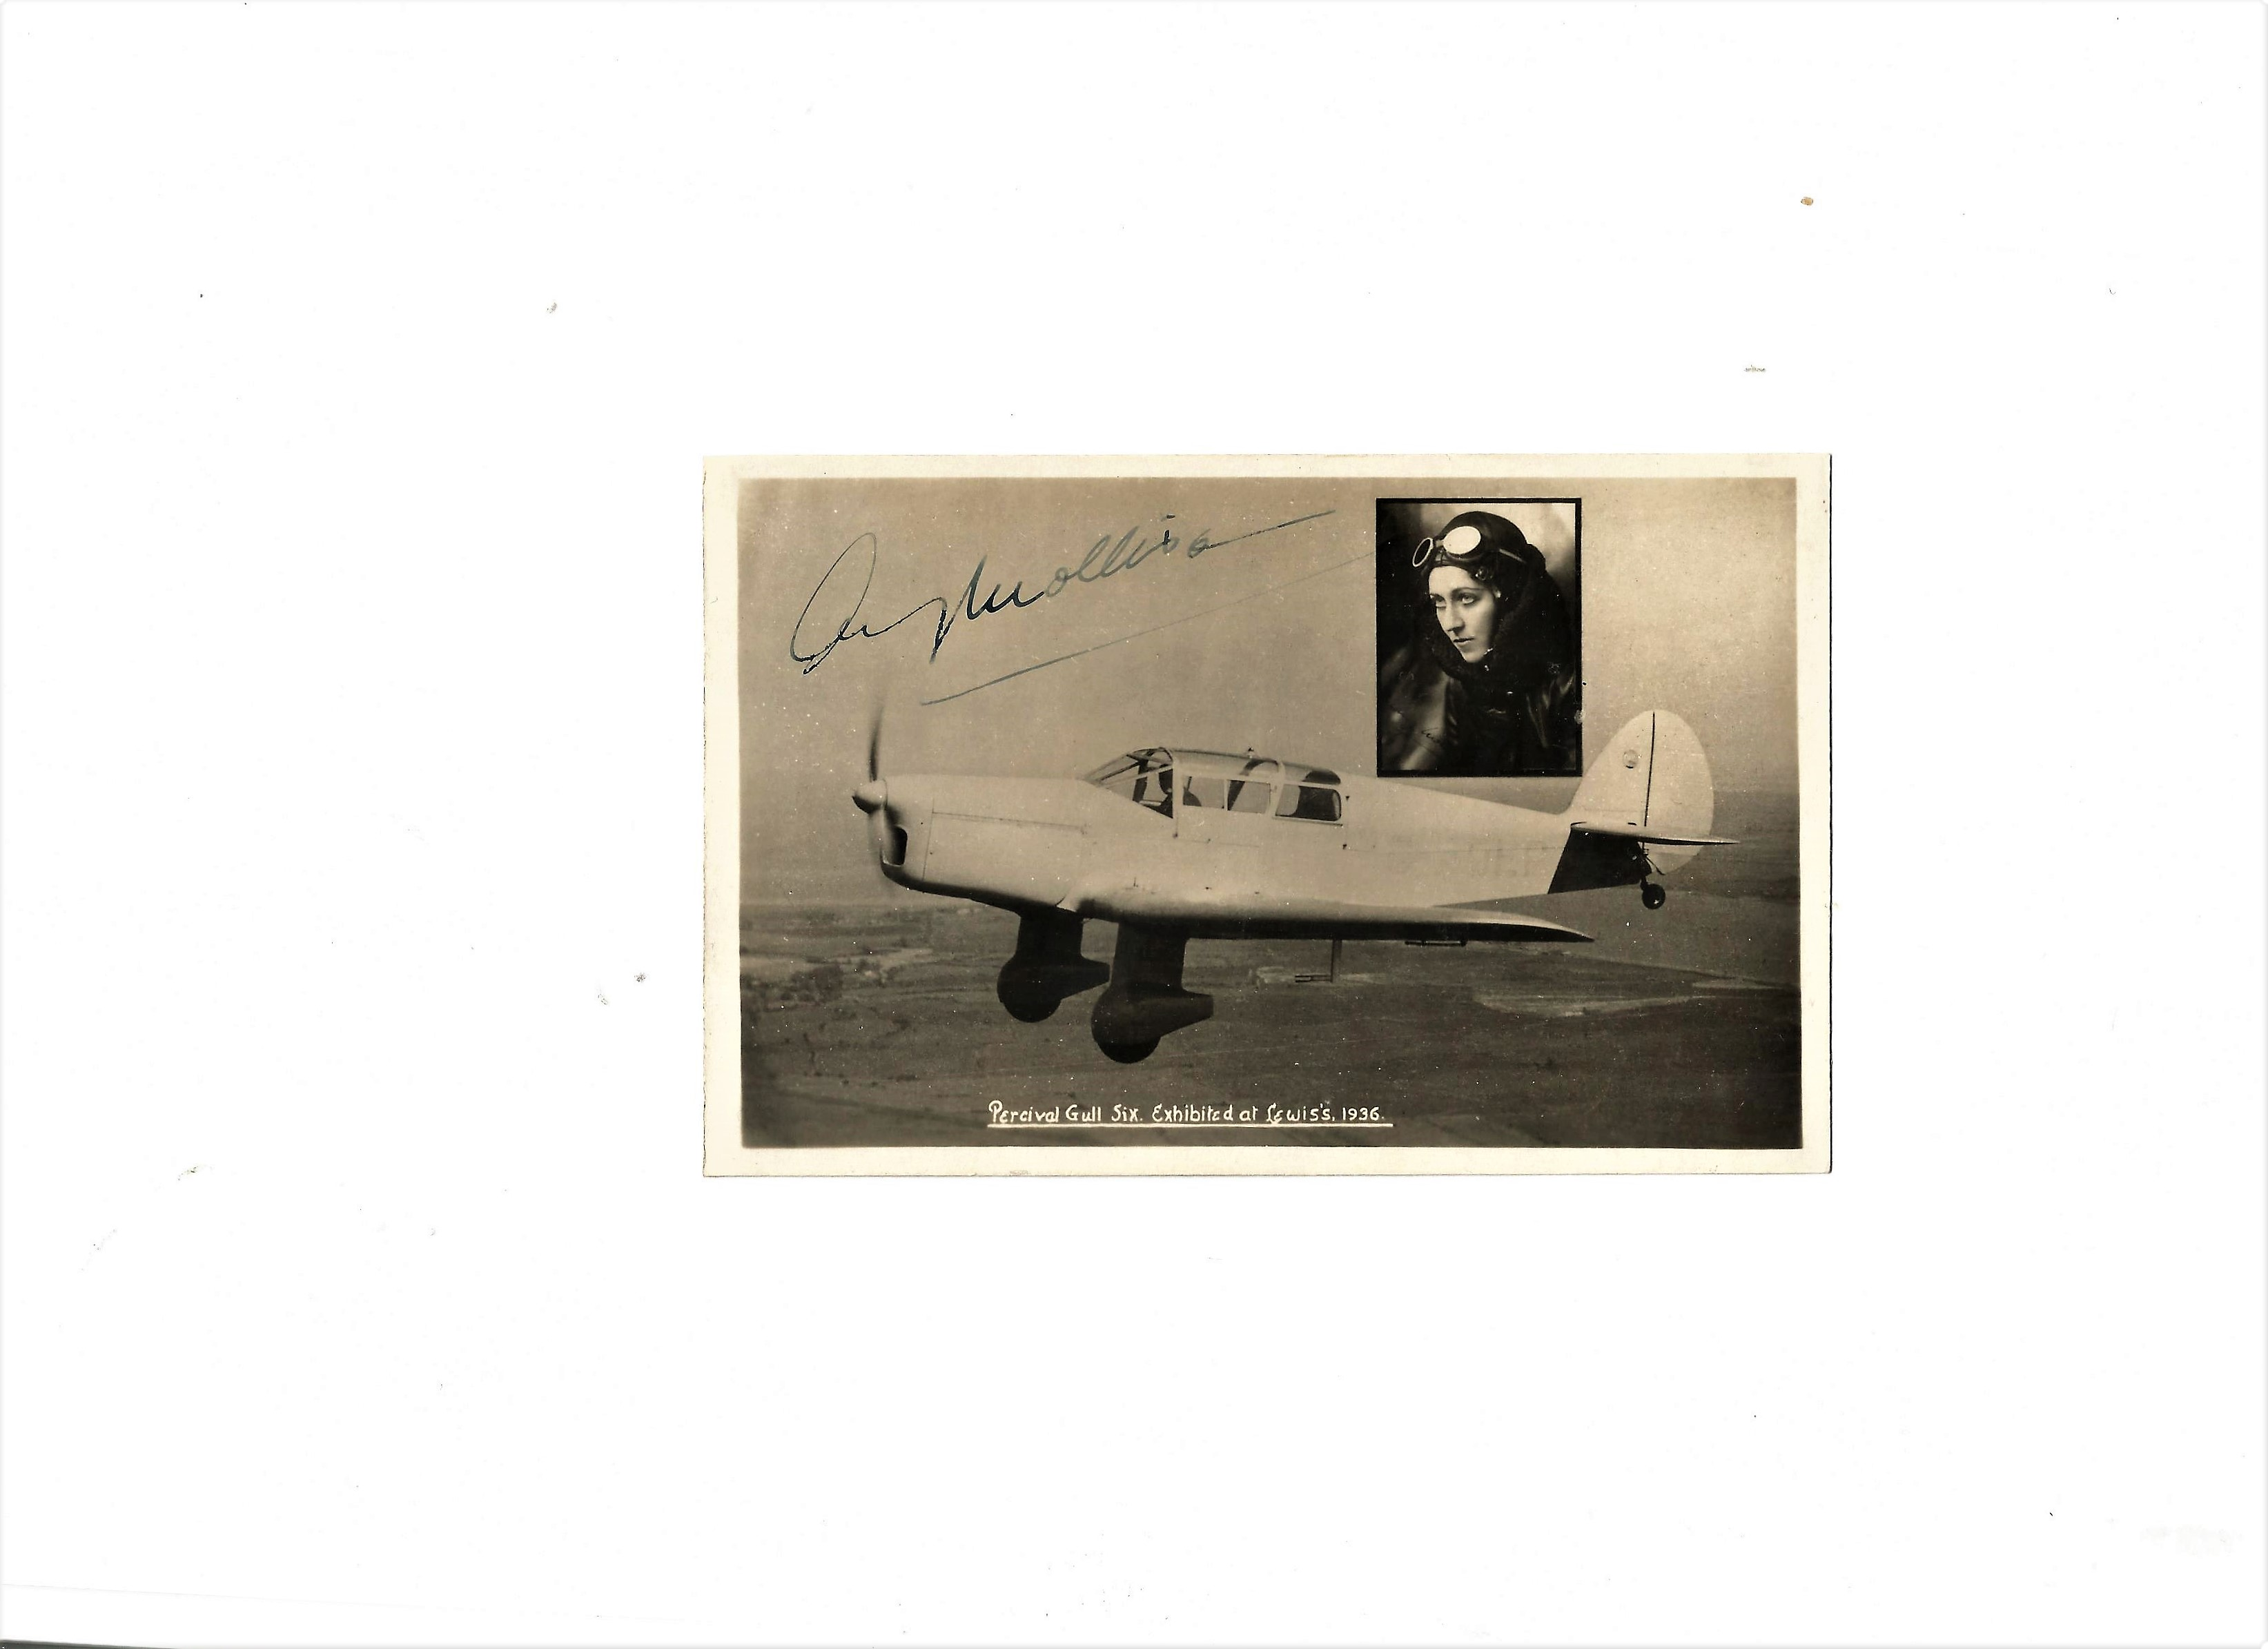 Lot 38 - Aviation Amy Johnson vintage post card photo signed 'Amy Mollison' with a picture of the Percival